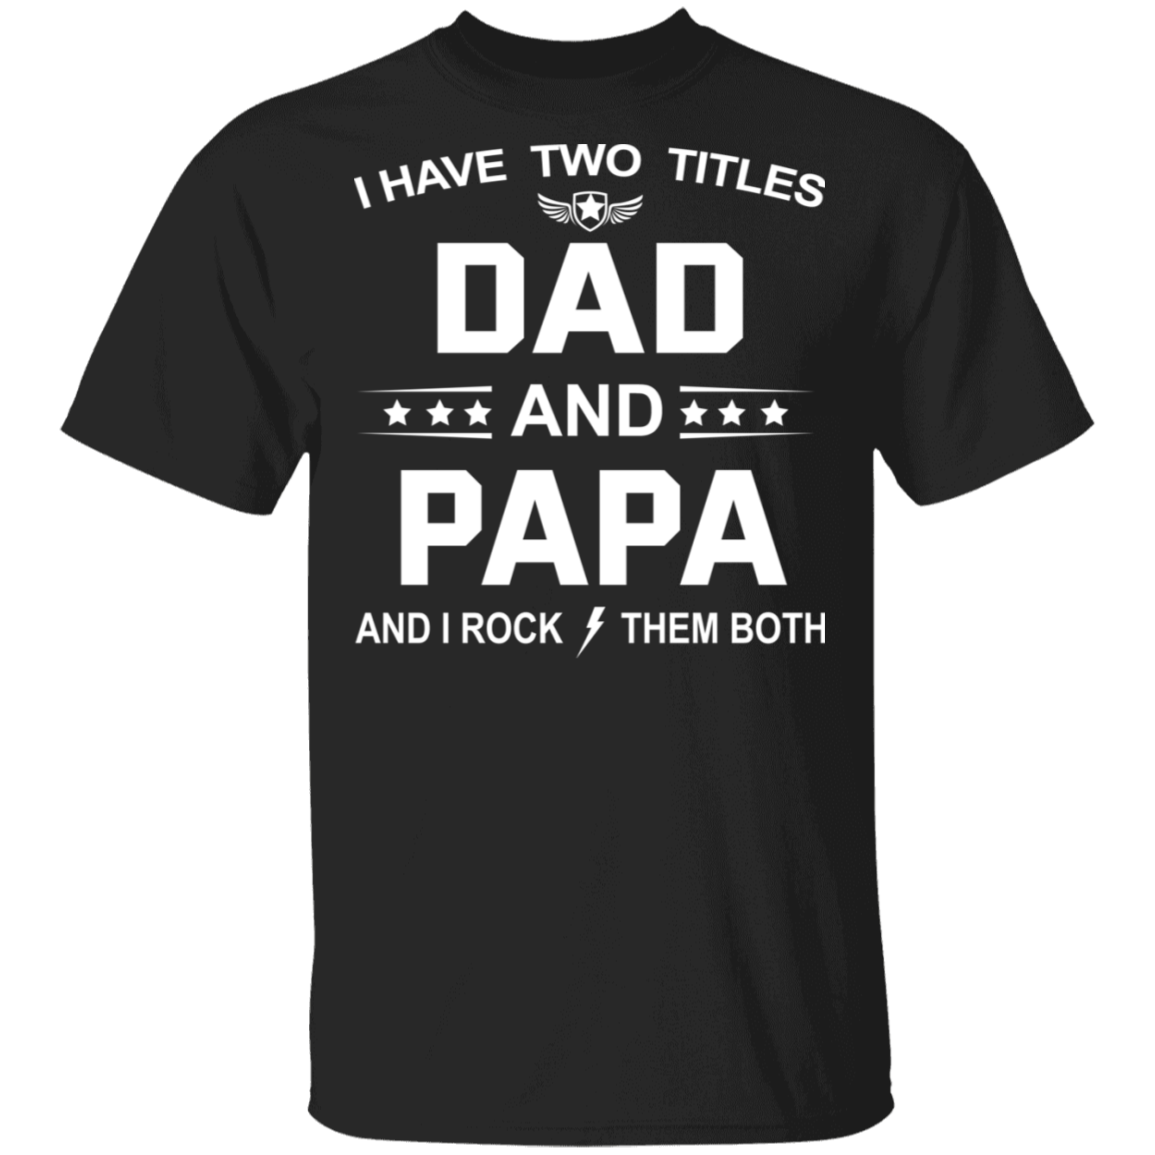 I Have Two Titles Dad and Papa T-Shirt Funny Quote Men Tee For Fathers Day, Gift For Daddy